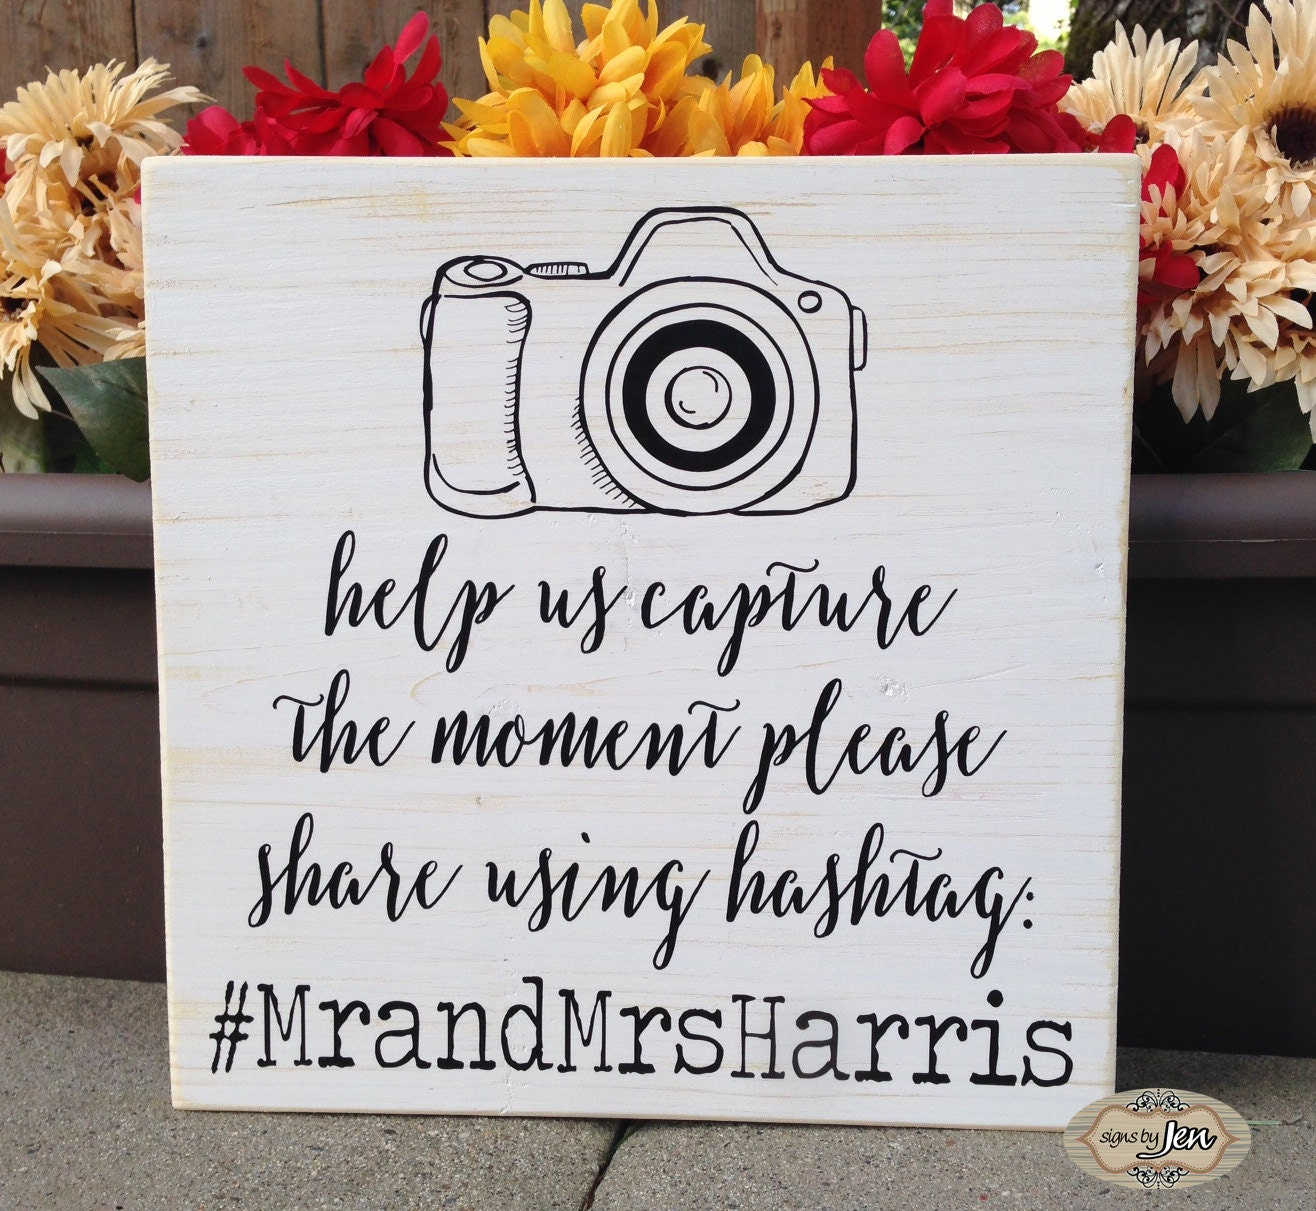 Spanish Wedding Hashtags: Wedding Hashtag Sign Help Us Capture The Moment By SignsbyJen